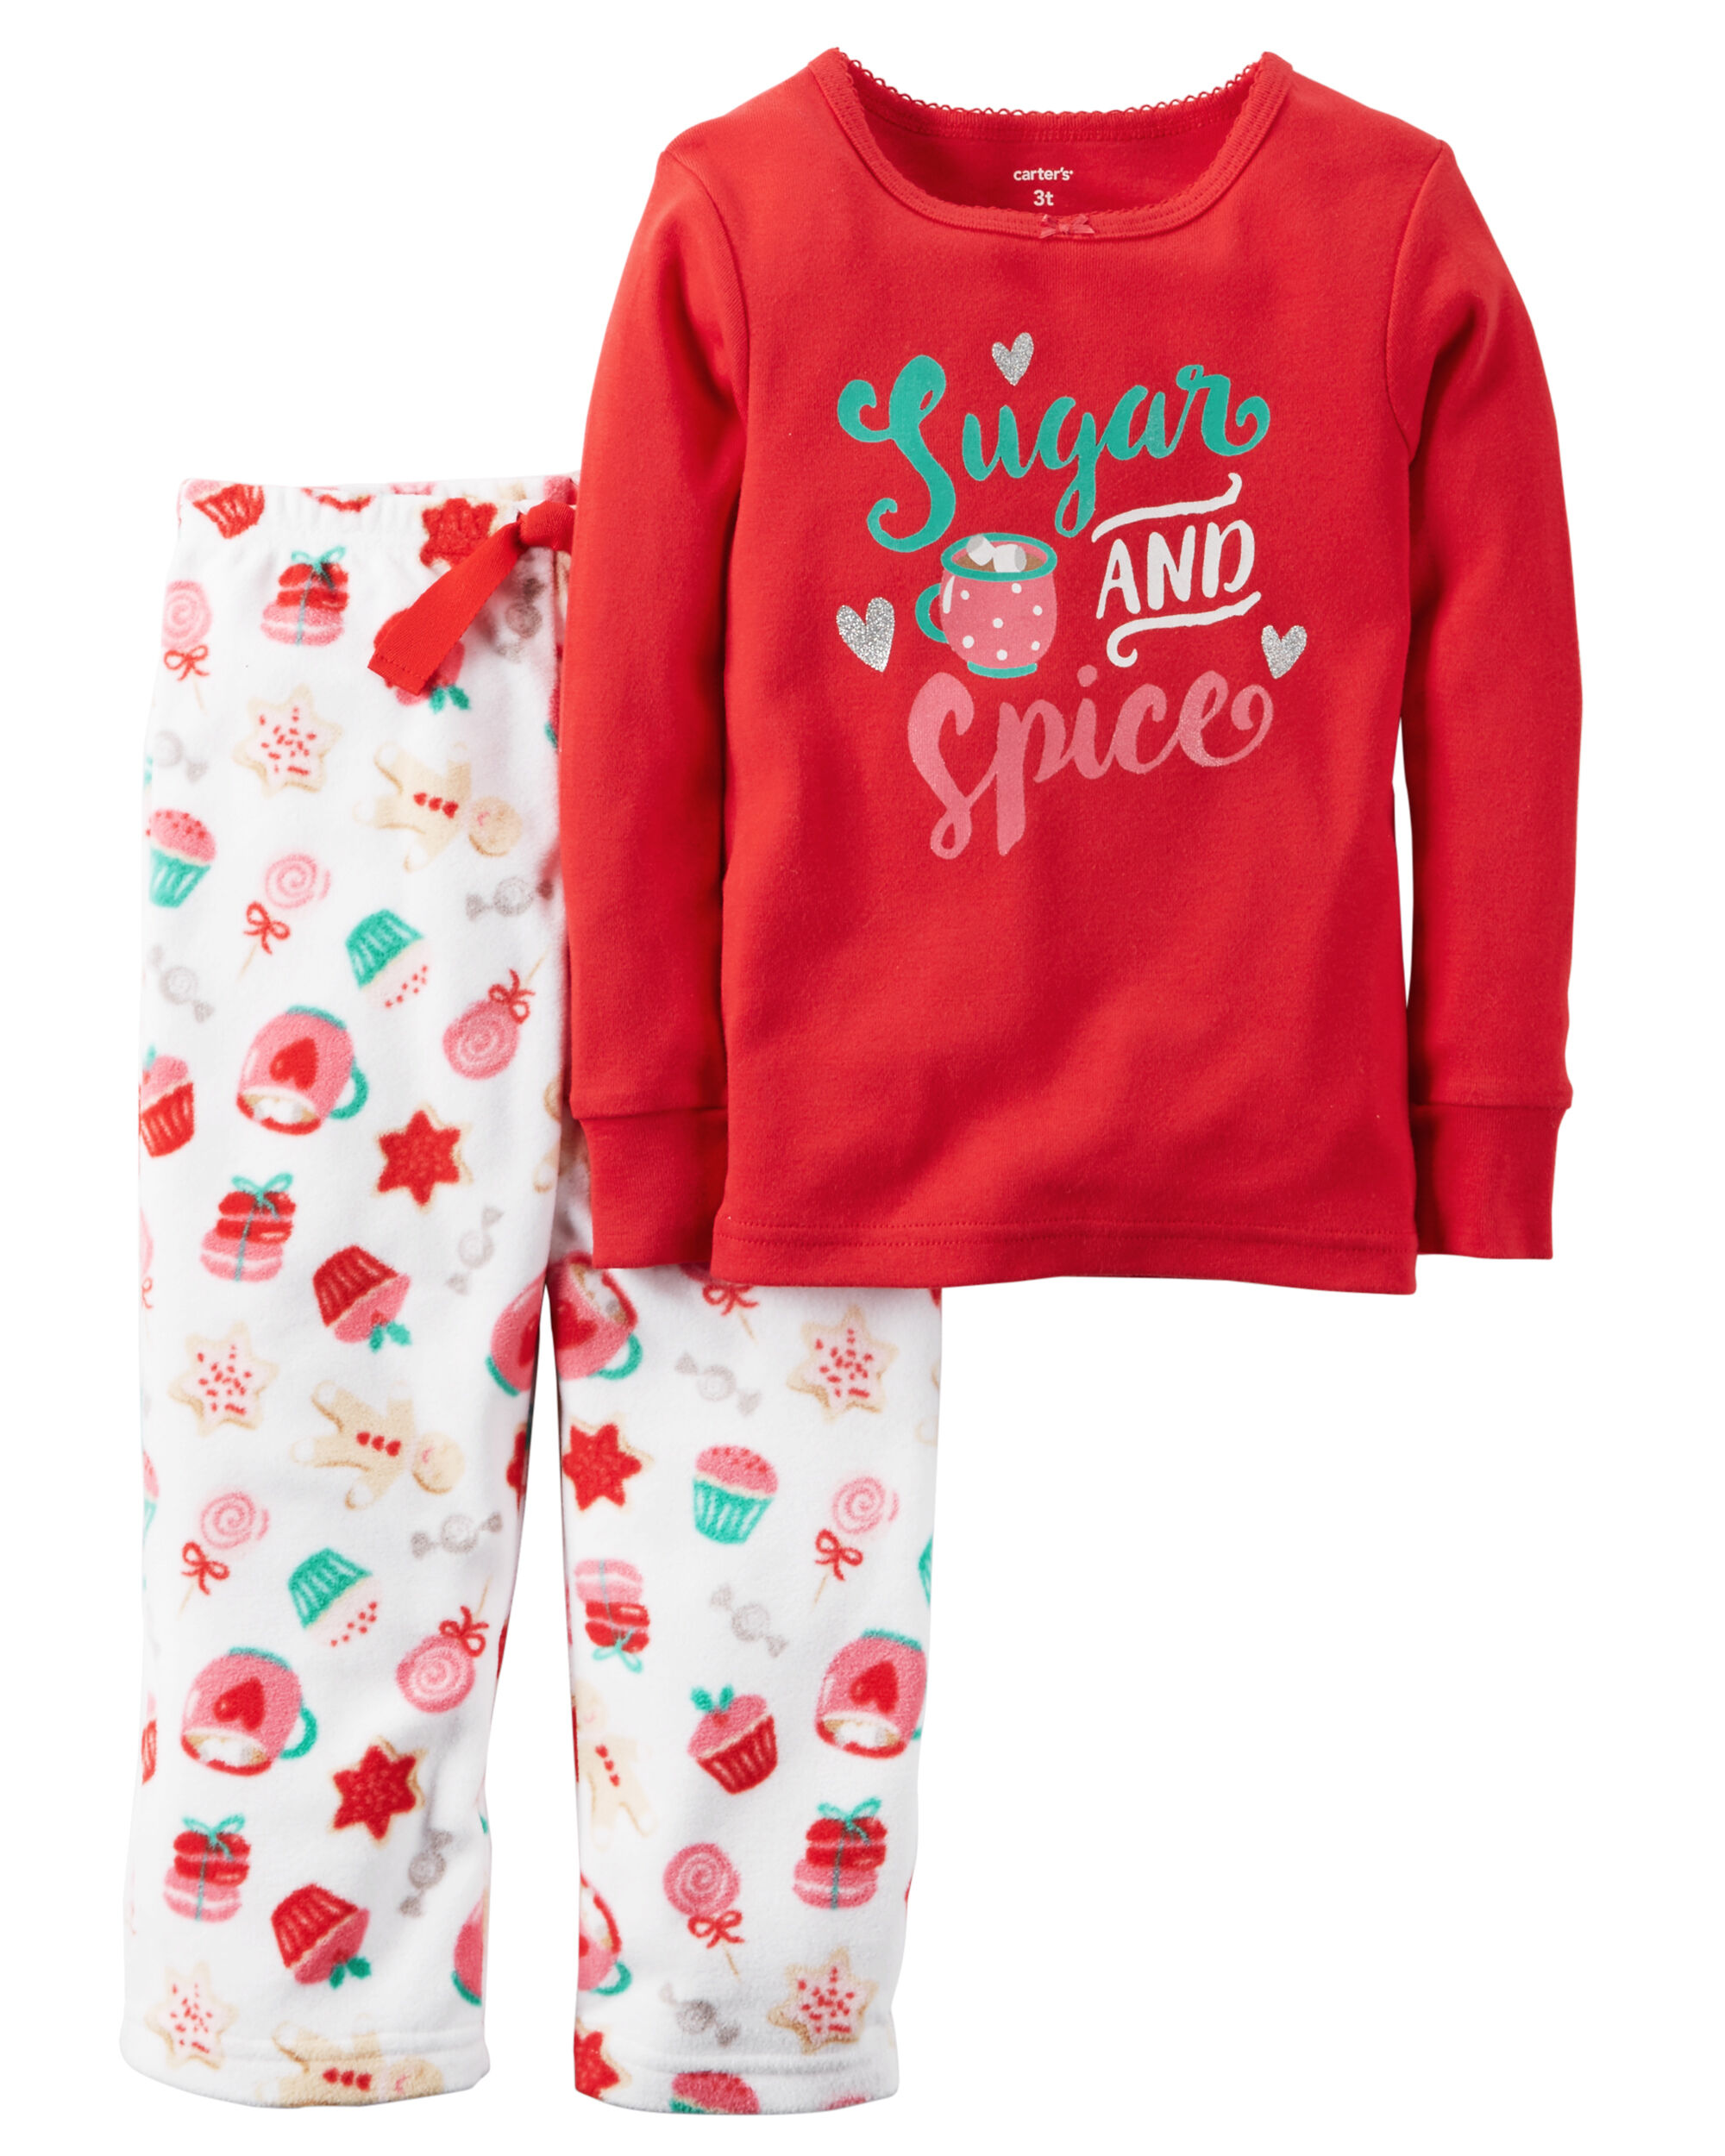 Toddler Christmas Pajamas Personalized